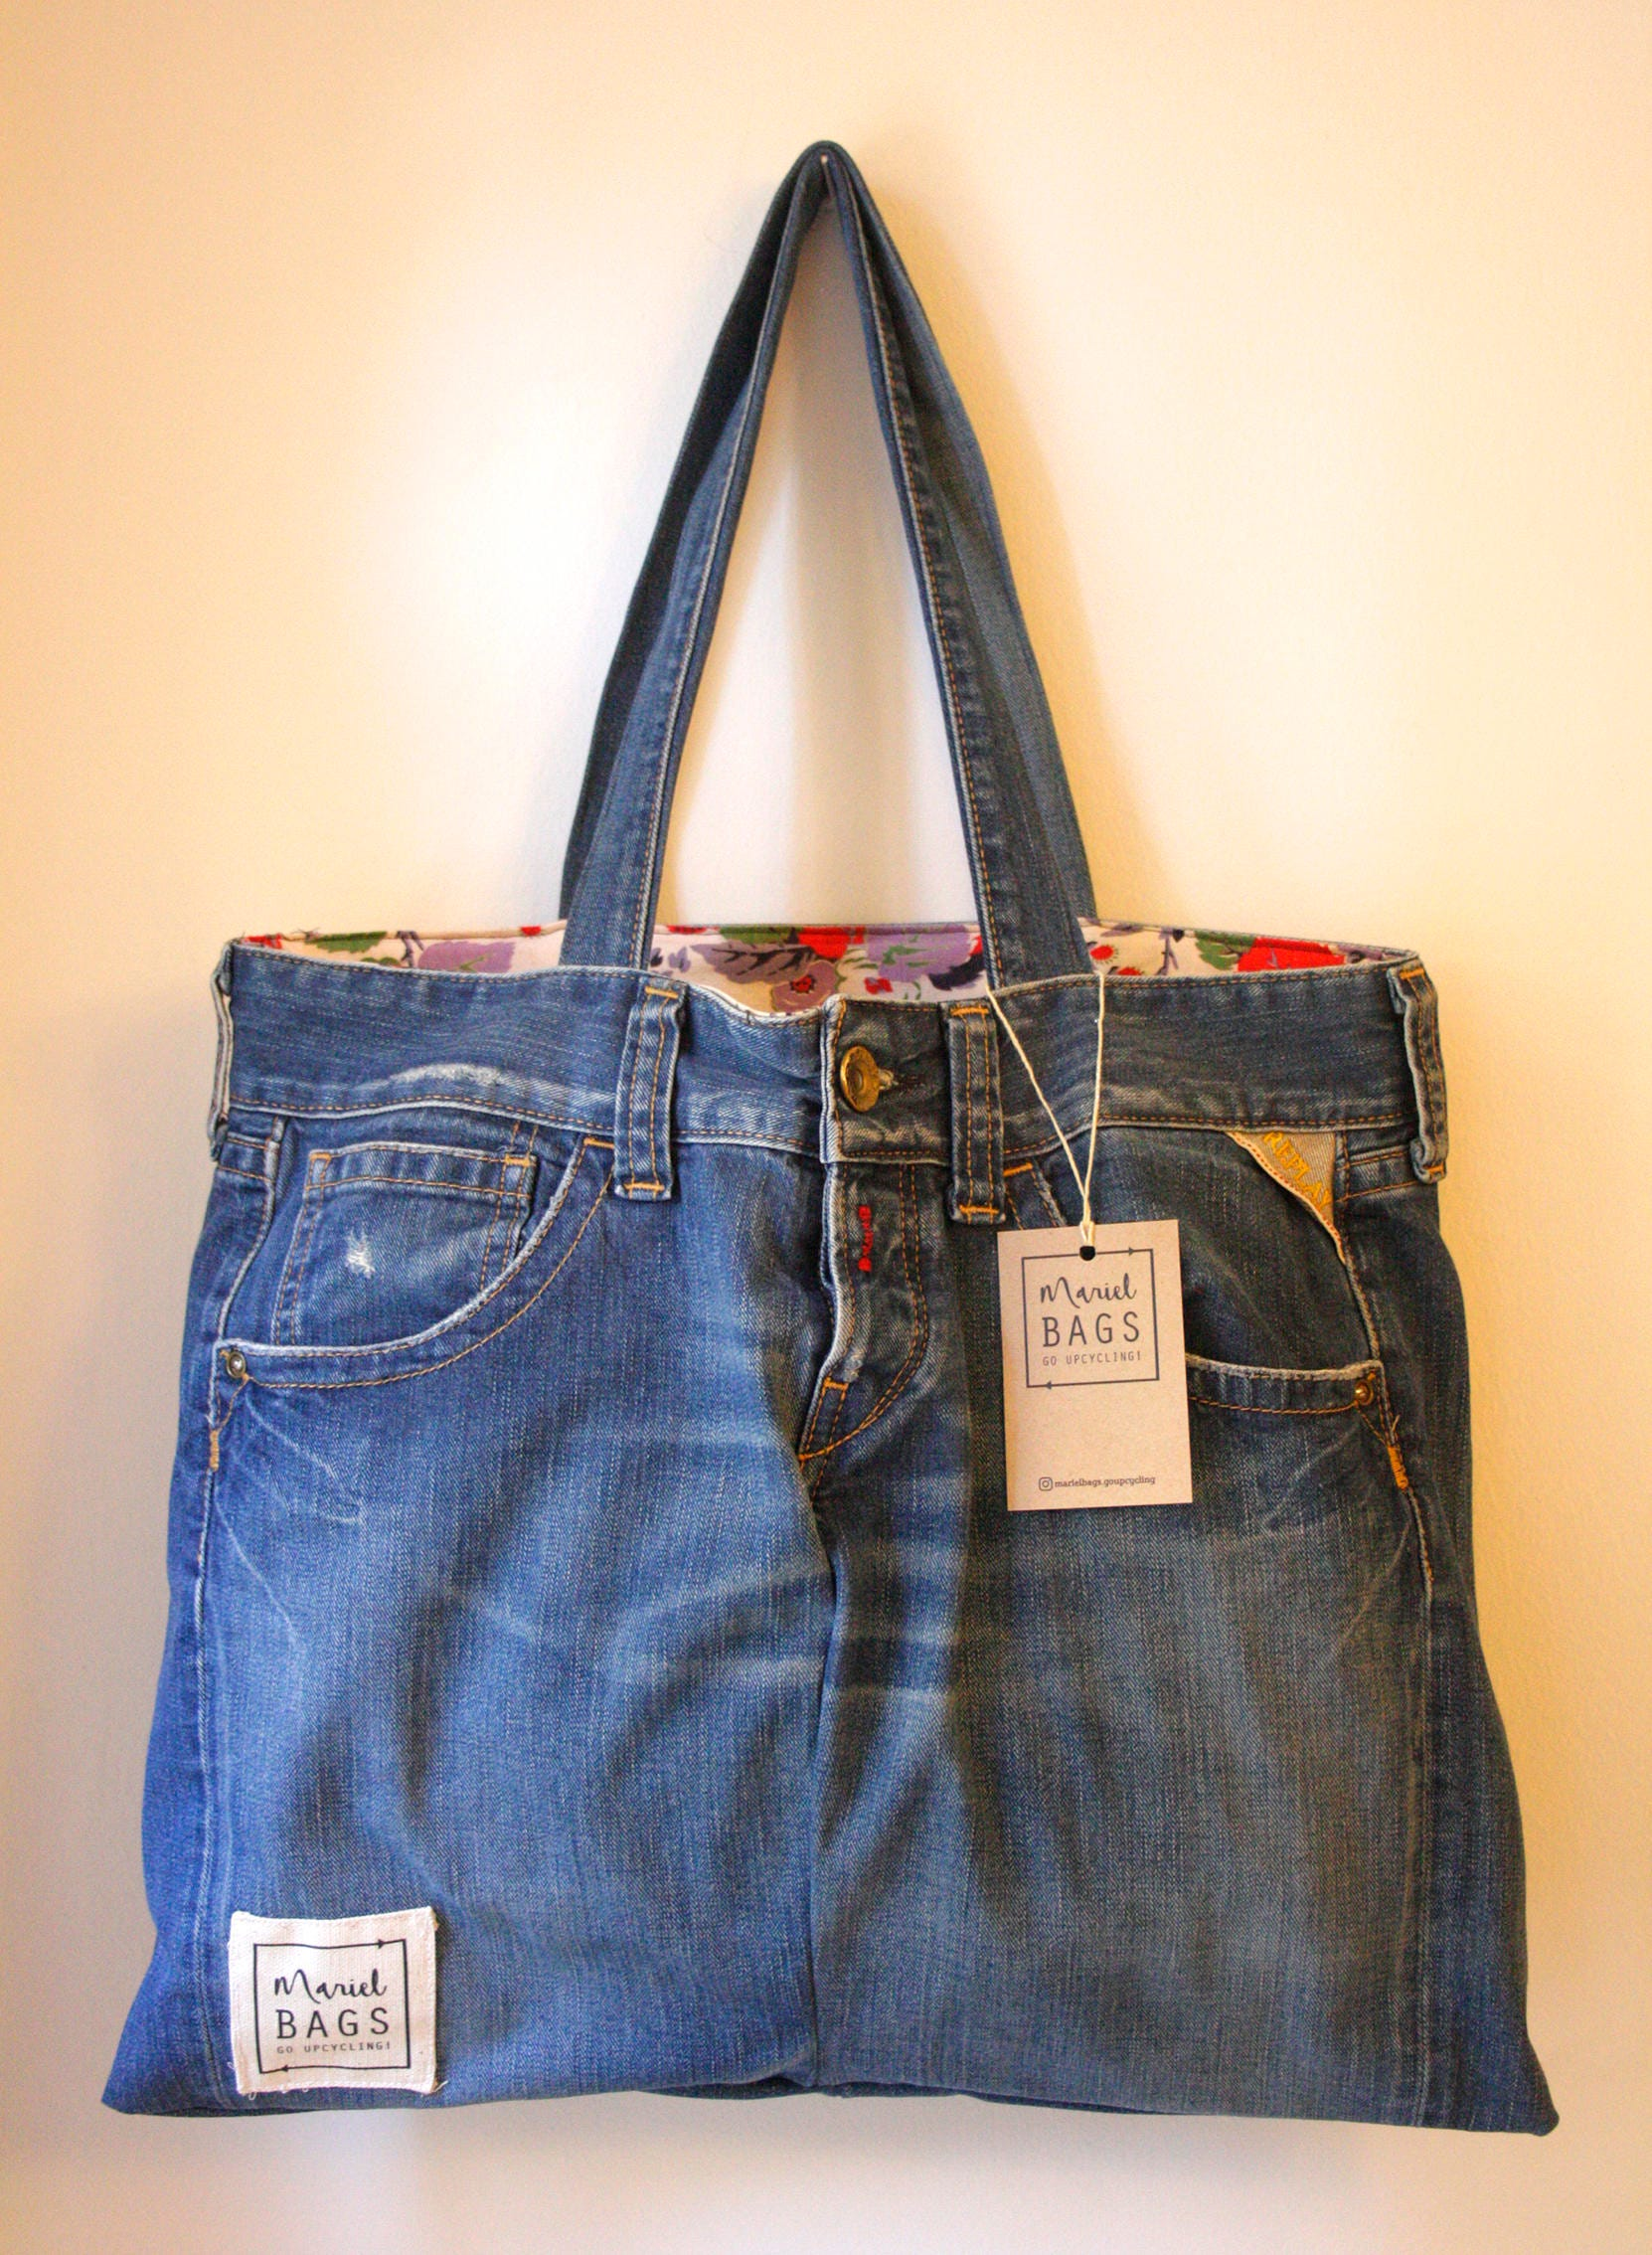 8b46b8250fd1 Unique handmade upcycled jean Bag-Unique handmade handbag with